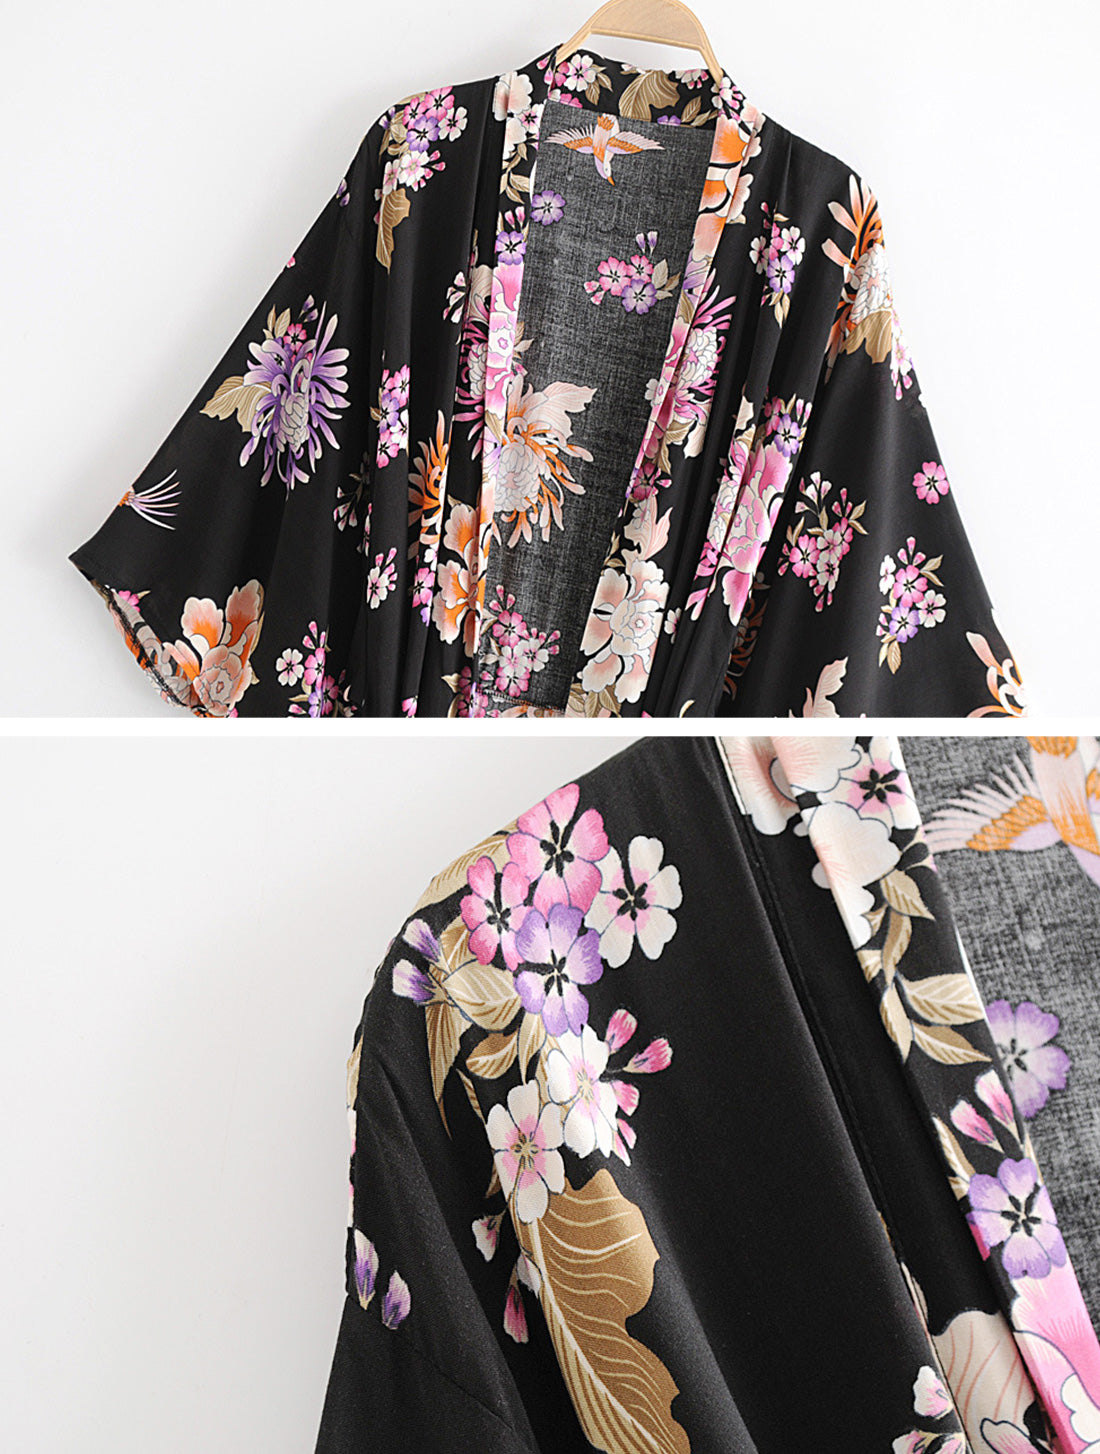 Simple As Can Kimono Robe Details 1